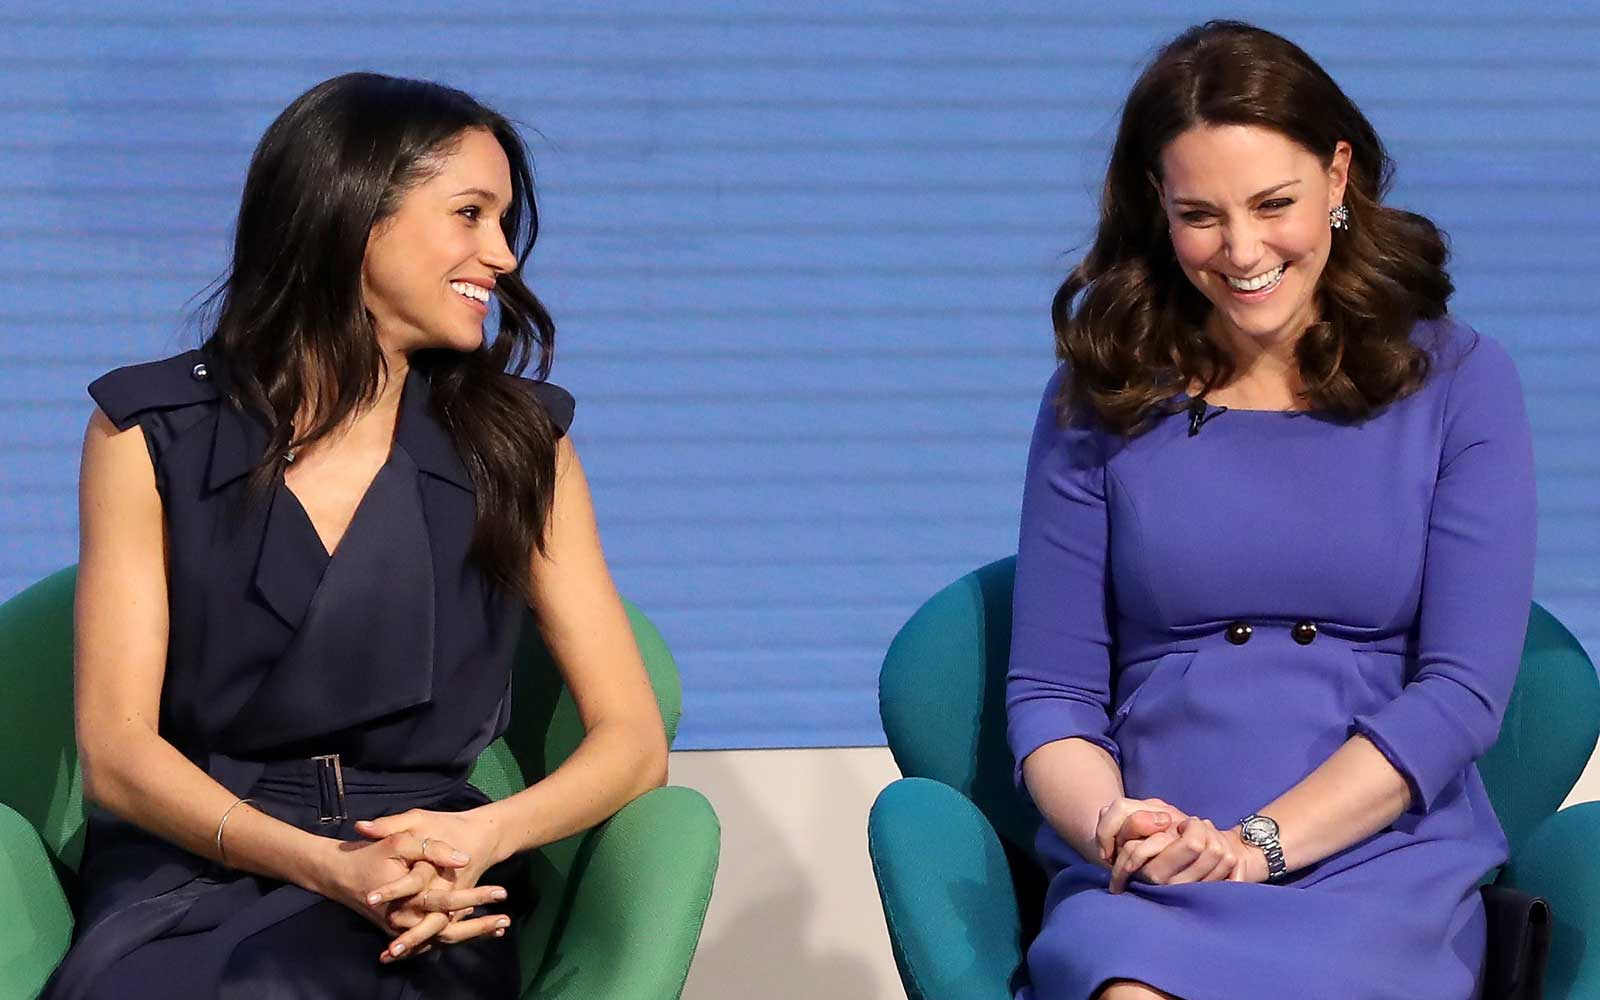 Meghan Markle and Catherine, Duchess of Cambridge attend the first annual Royal Foundation Forum held at Aviva on February 28, 2018 in London, England.